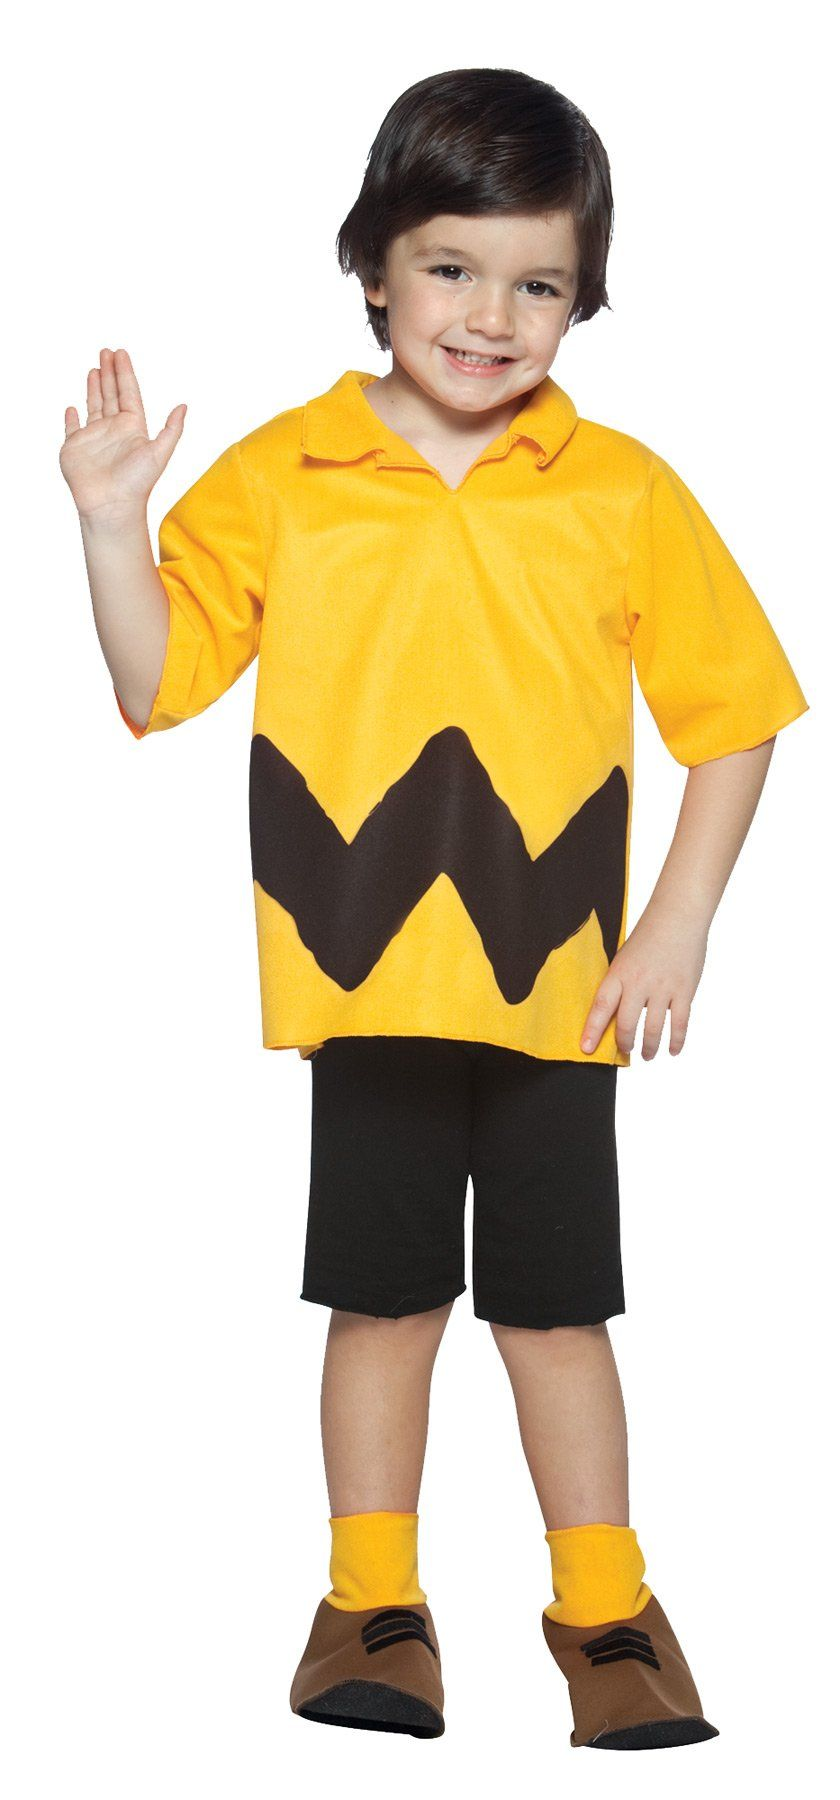 a63a68f8e Peanuts Charlie Brown Boys Costume Kit 4-6X in 2019 | Products | Boy ...